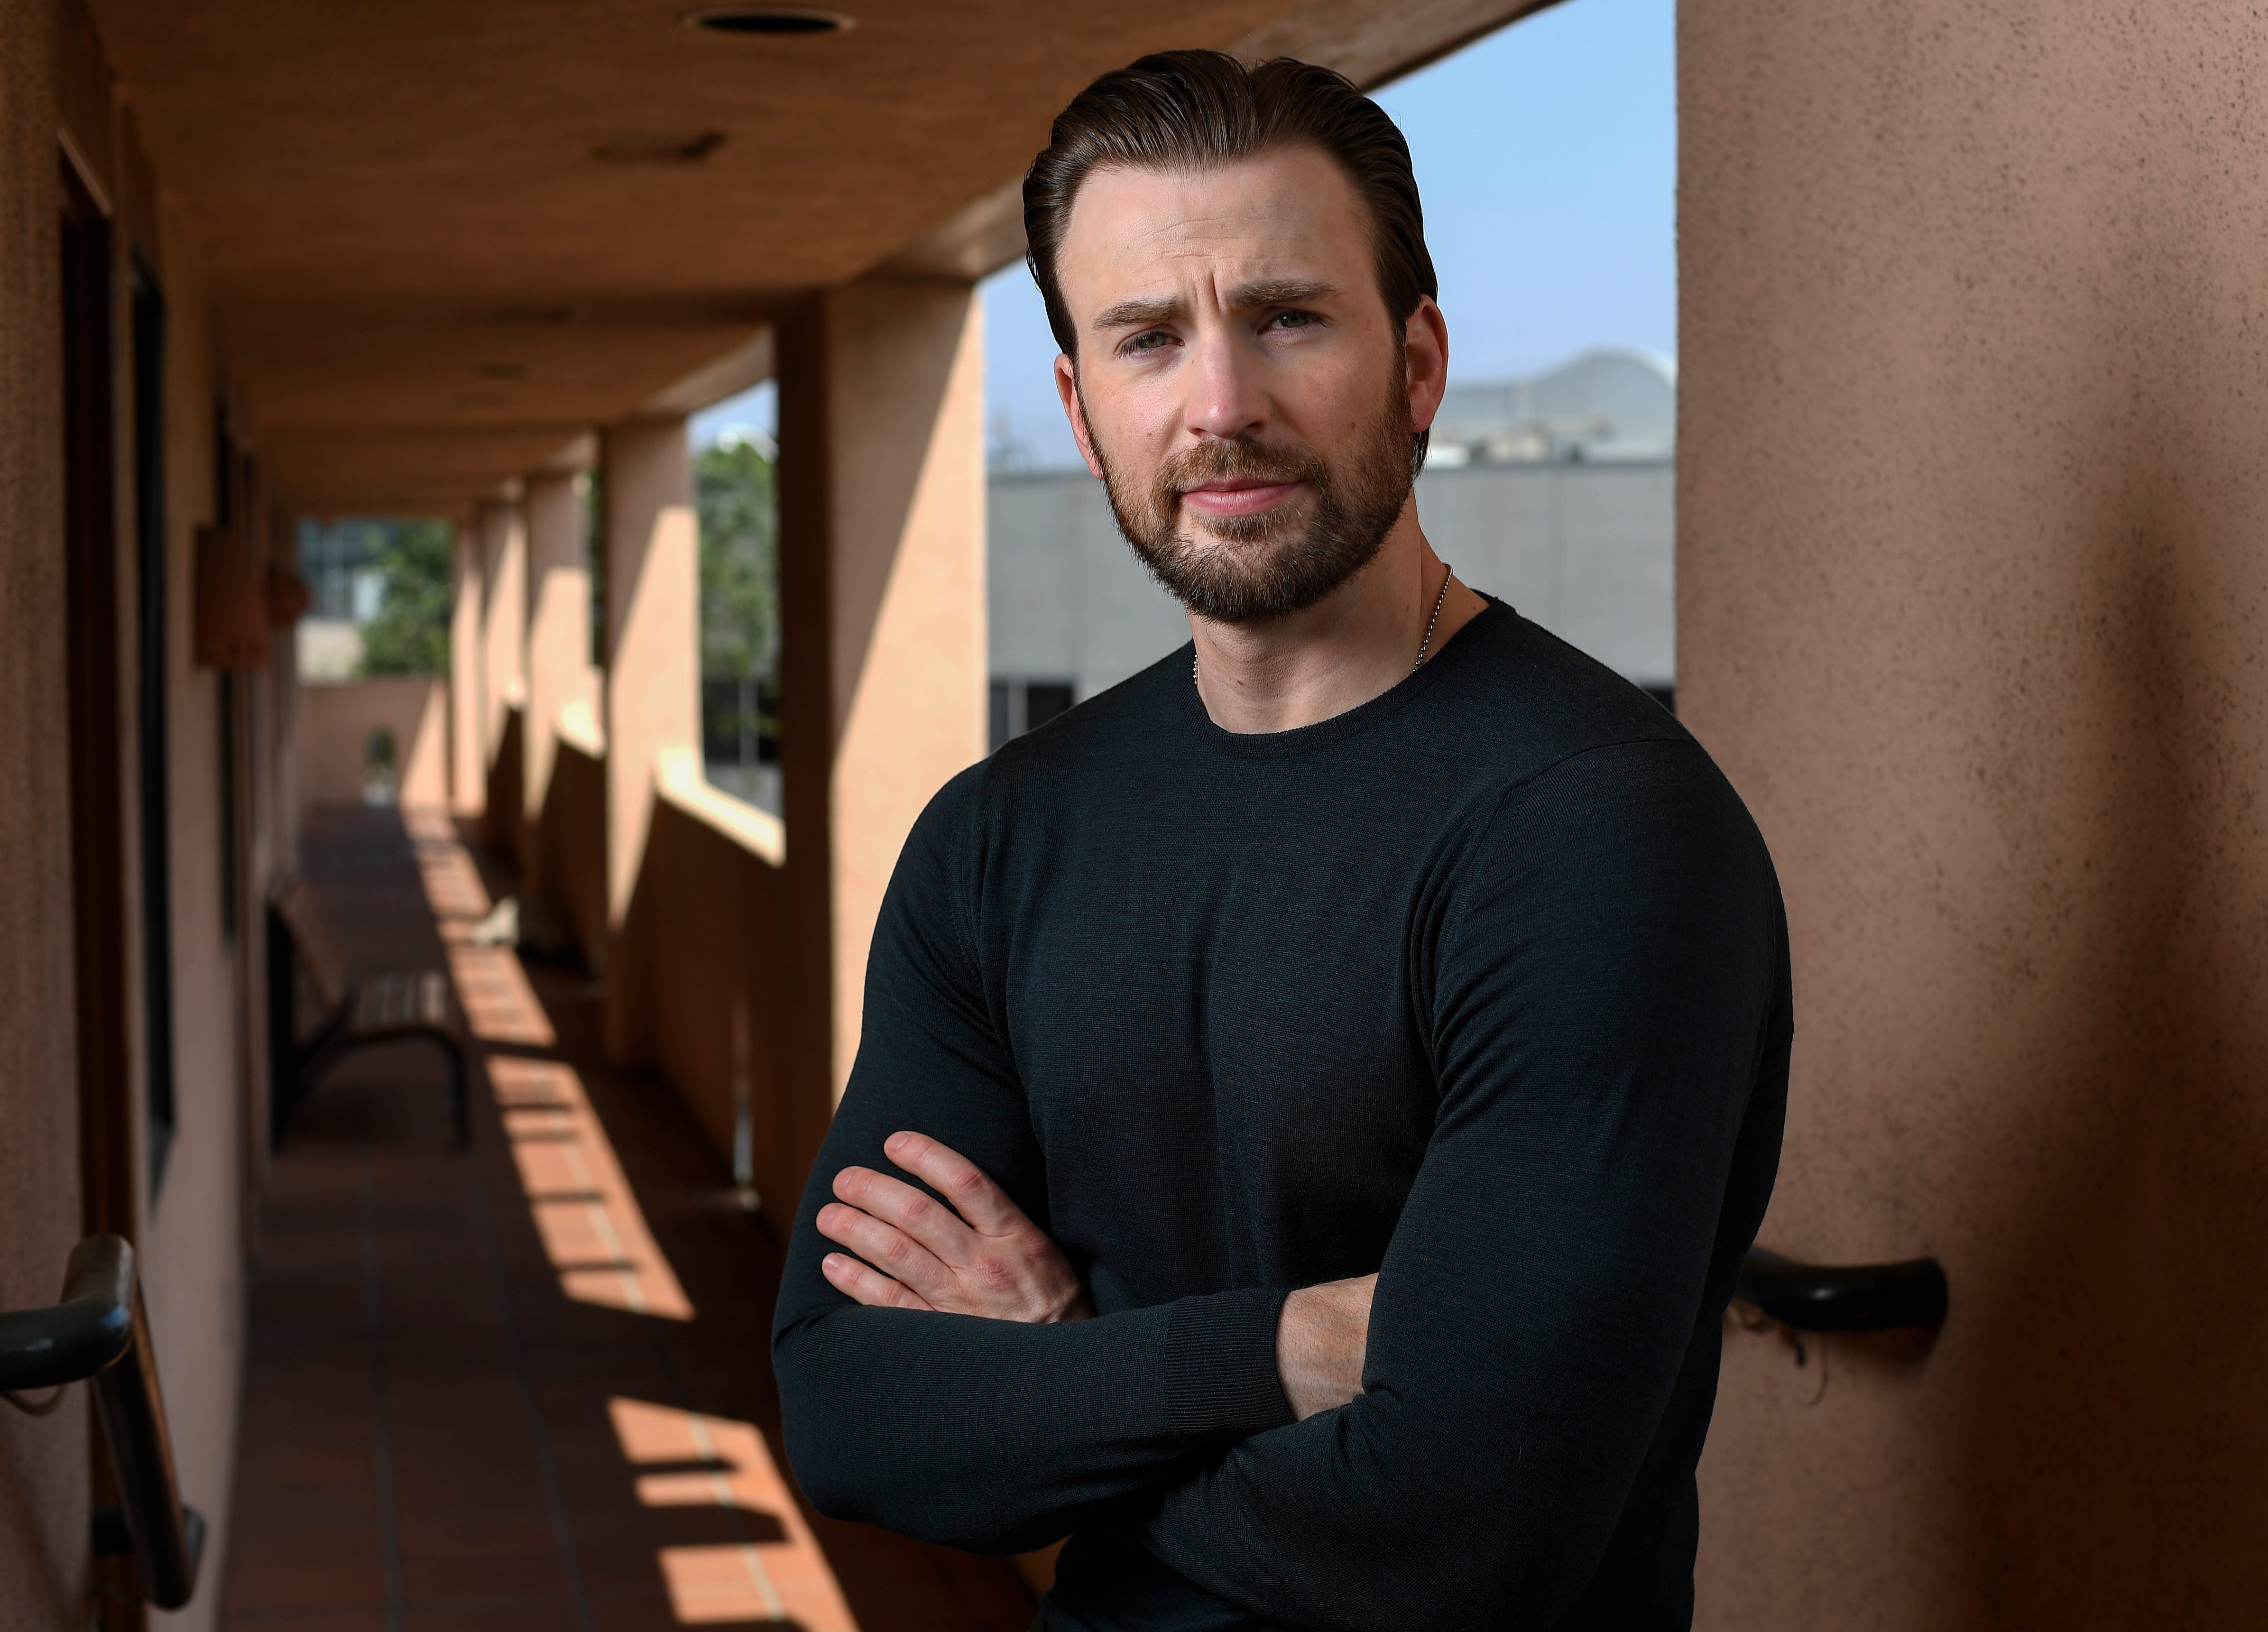 Has Chris Evans been discharged as 'Captain America'?